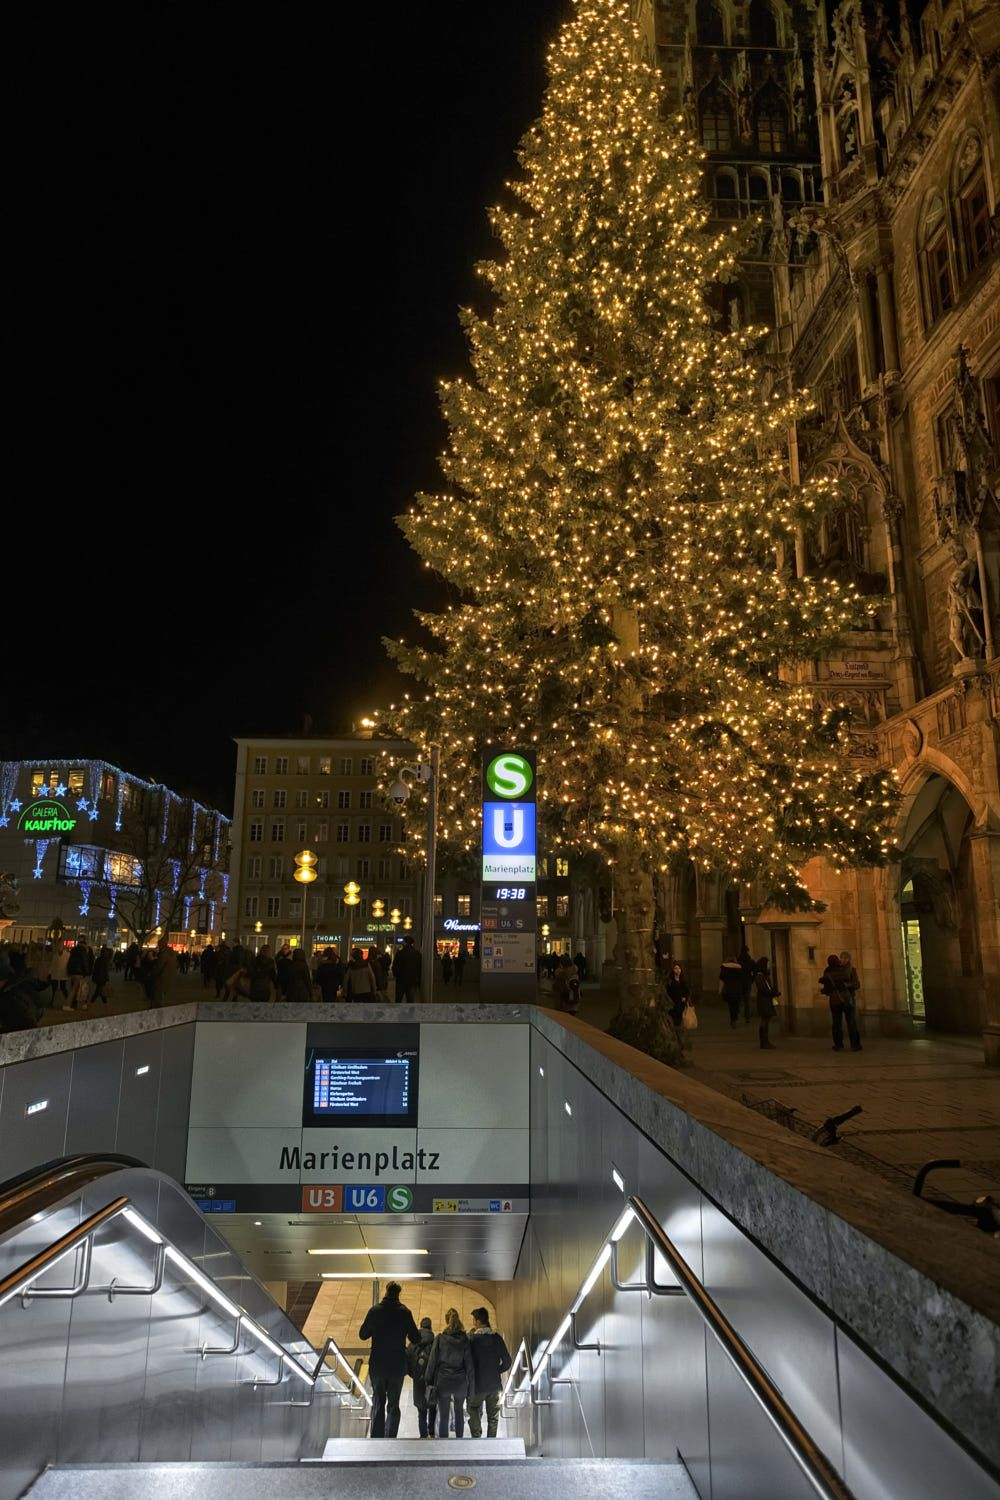 Marienplatz Subway And Xmas Tree Dscf7931 1 Jpg By Emre Turan On